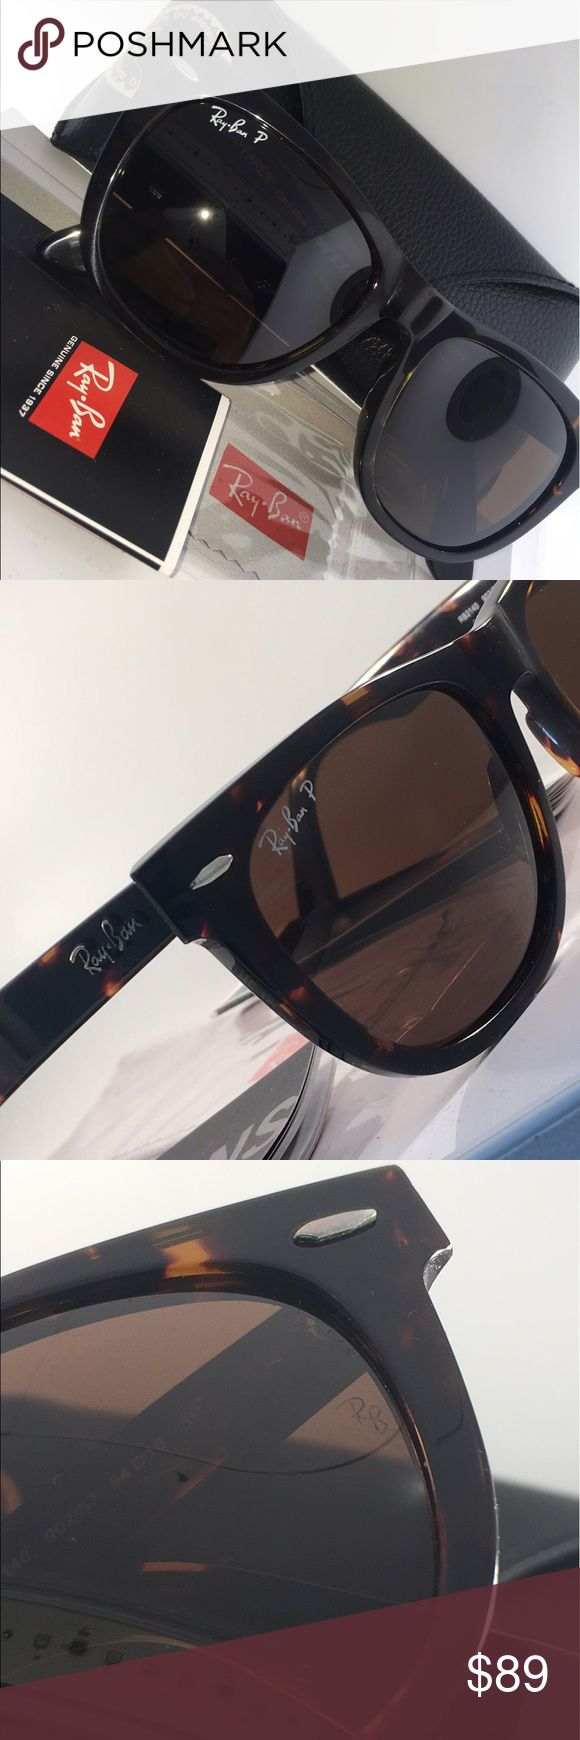 Ray Bans Wayfarer RAY BANS RB2140 TORTOISE WAYFARER POLARIZED 54mm w/ CASE AND PAPERS Ray-Ban Accessories Glasses